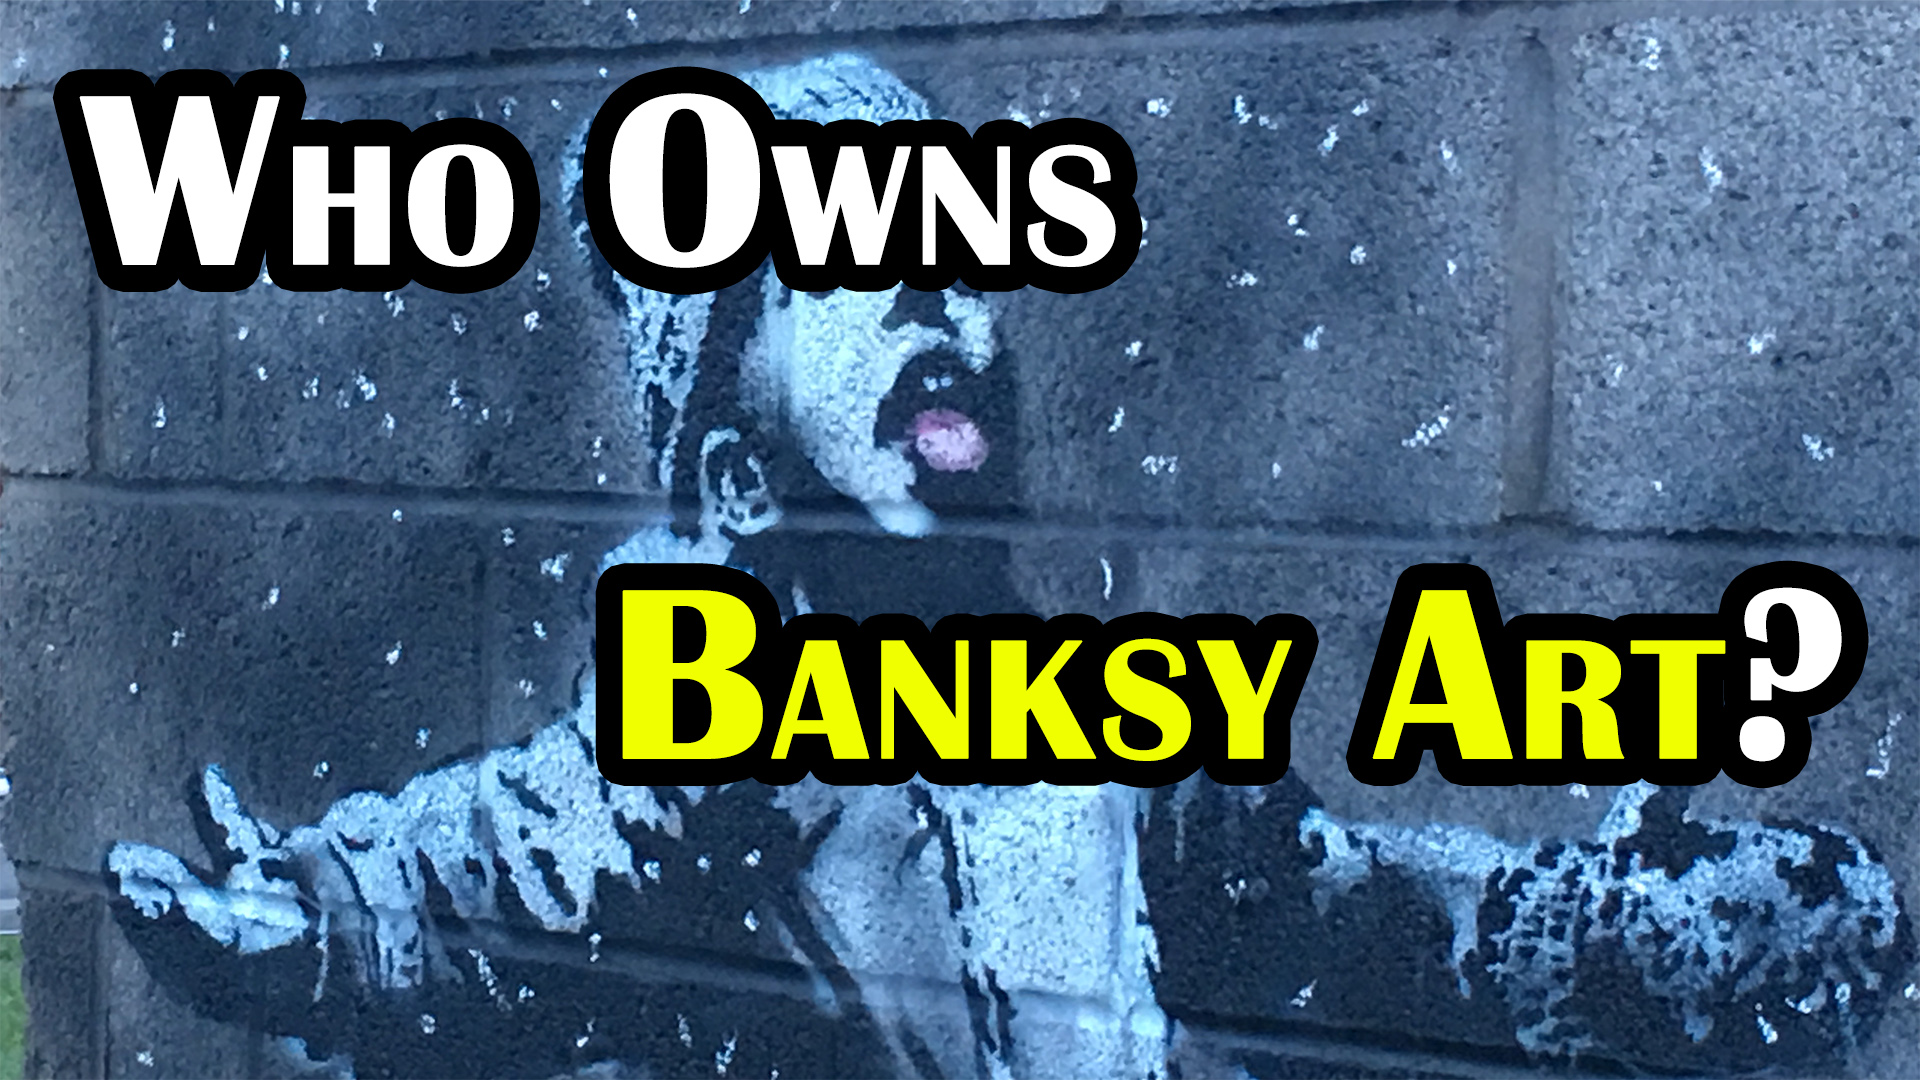 Who Actually Owns Banksy Art After It's Been Created?